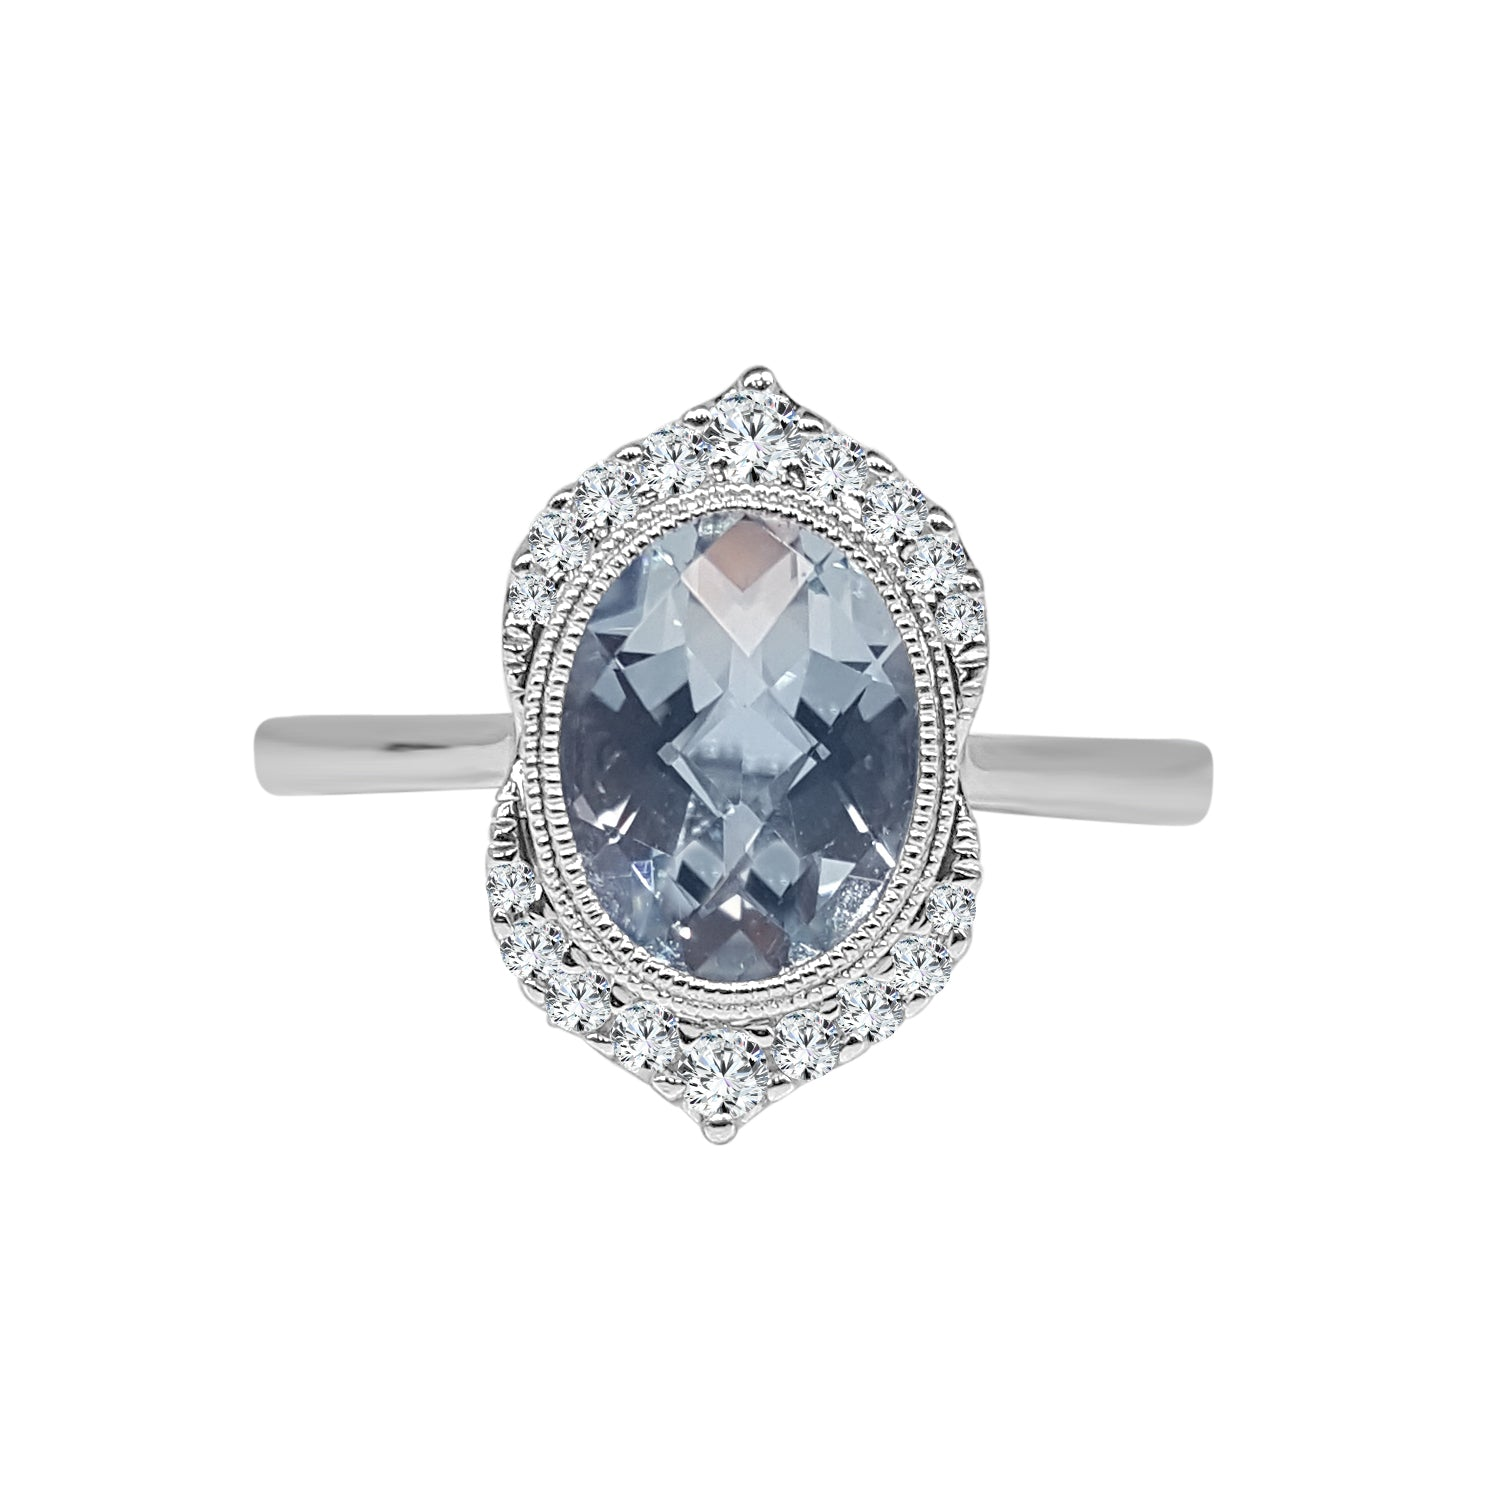 Oval Aquamarine With Vintage Style Diamond Design